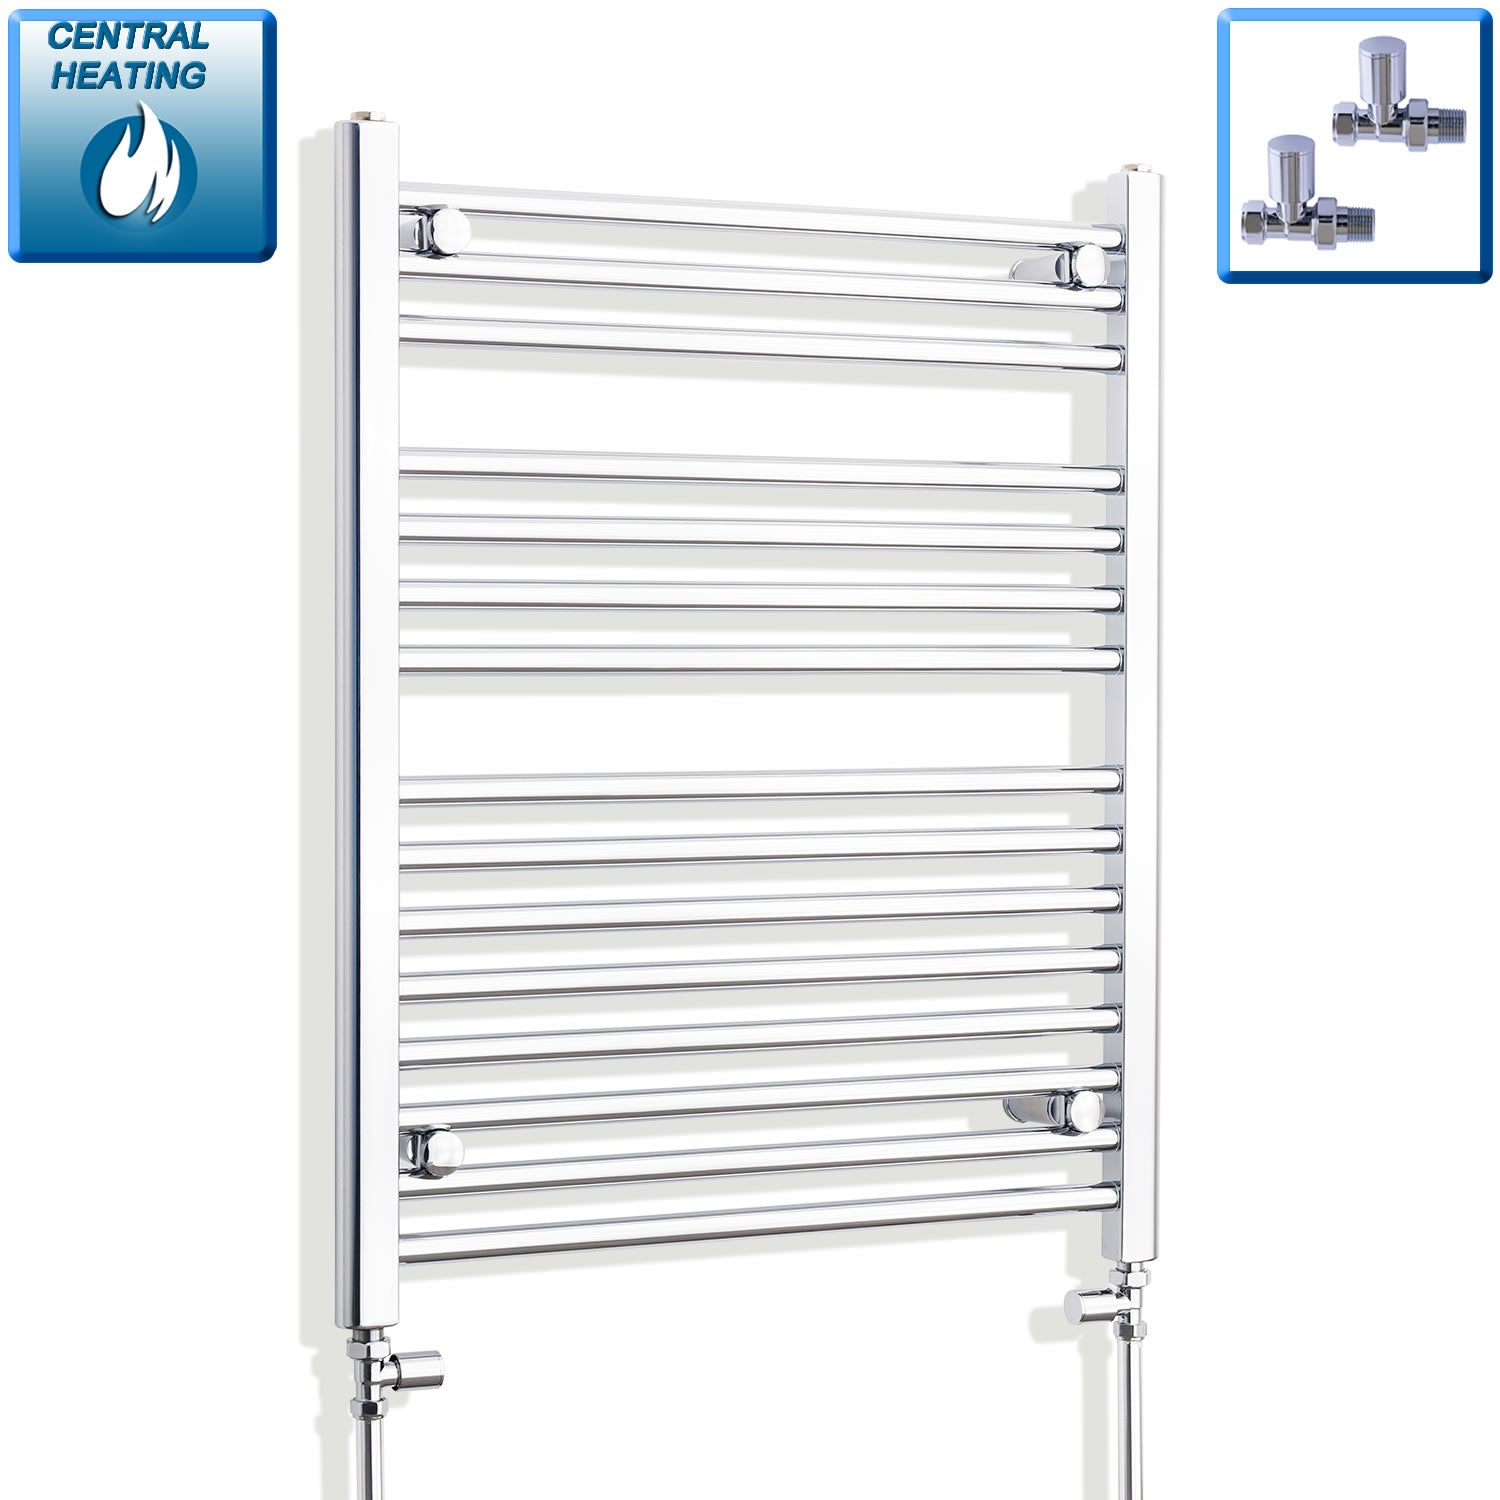 700mm Wide 800mm High Flat Chrome Heated Towel Rail Radiator HTR,With Straight Valve